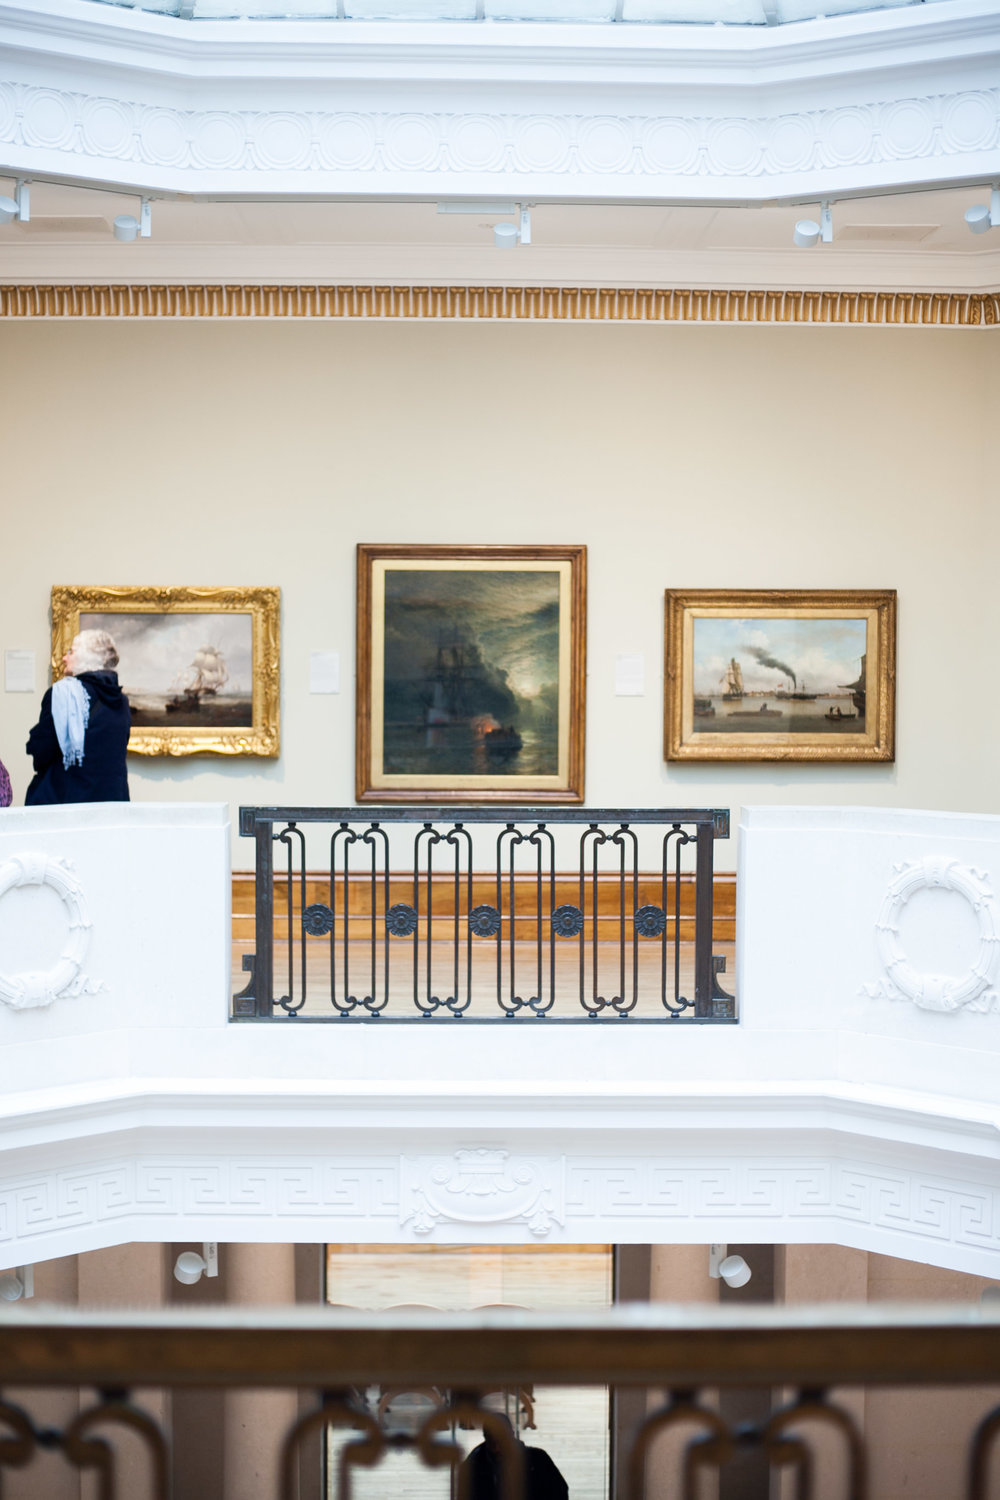 Maritime works (some depicting Hull)hang in the central gallery upstairs.